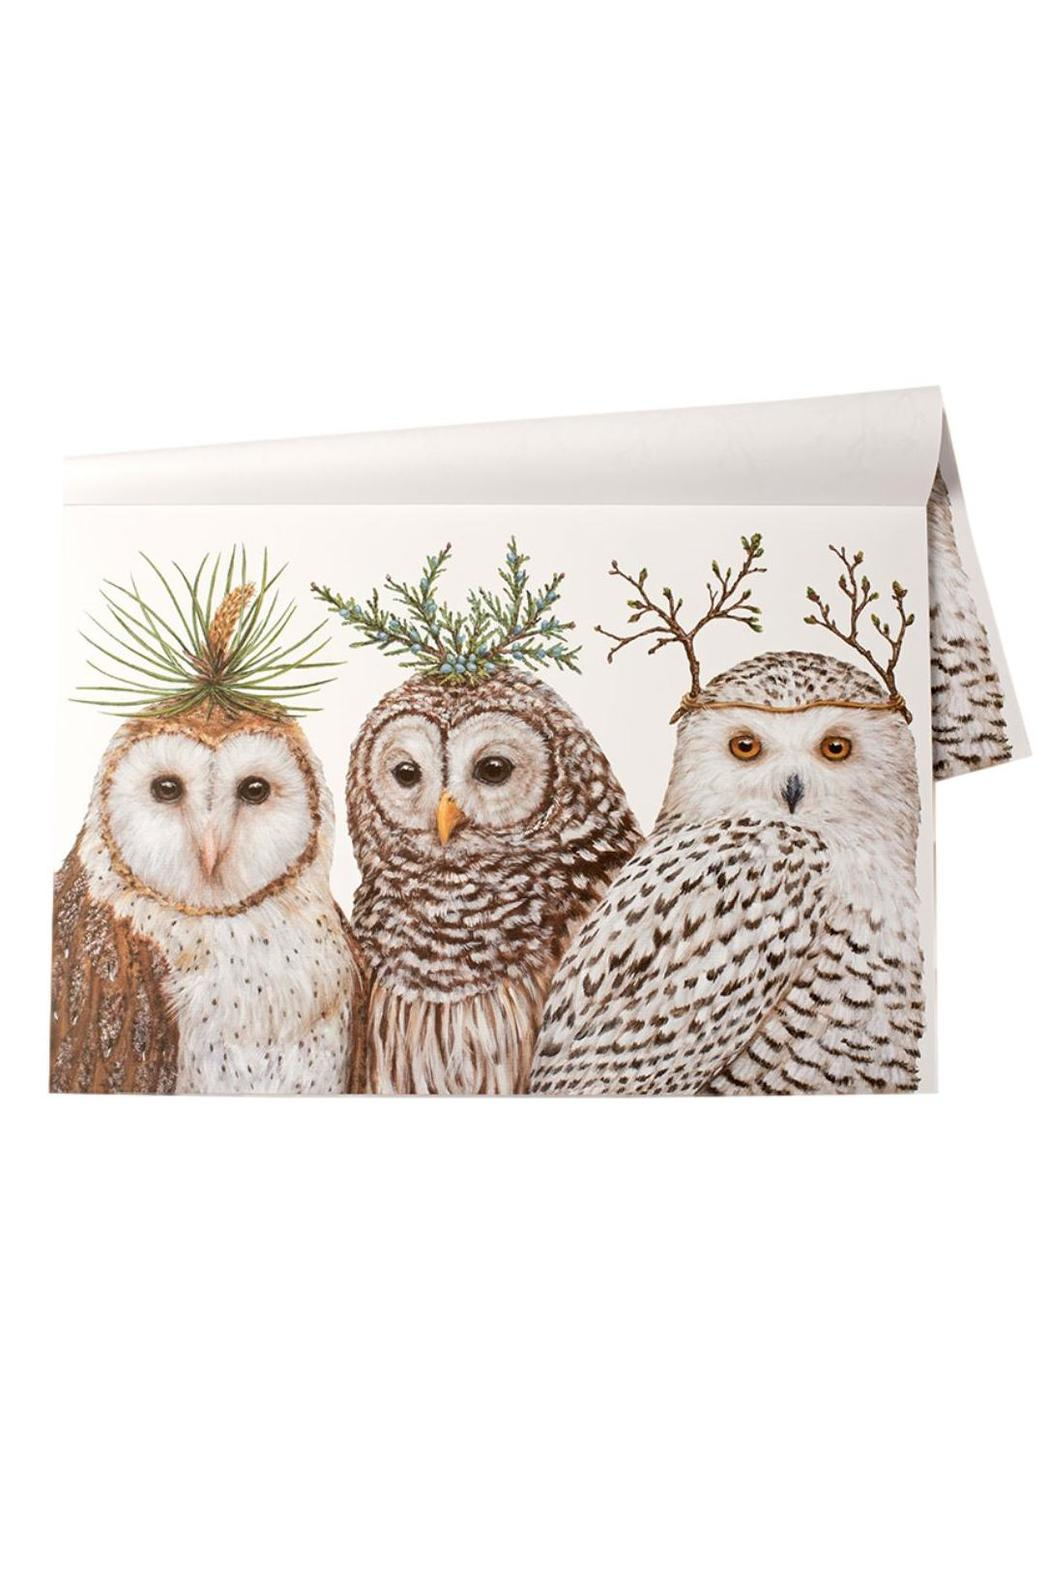 Owl Home Decor Accessories Castles Home Decor Winter Owl Placemats From Denver